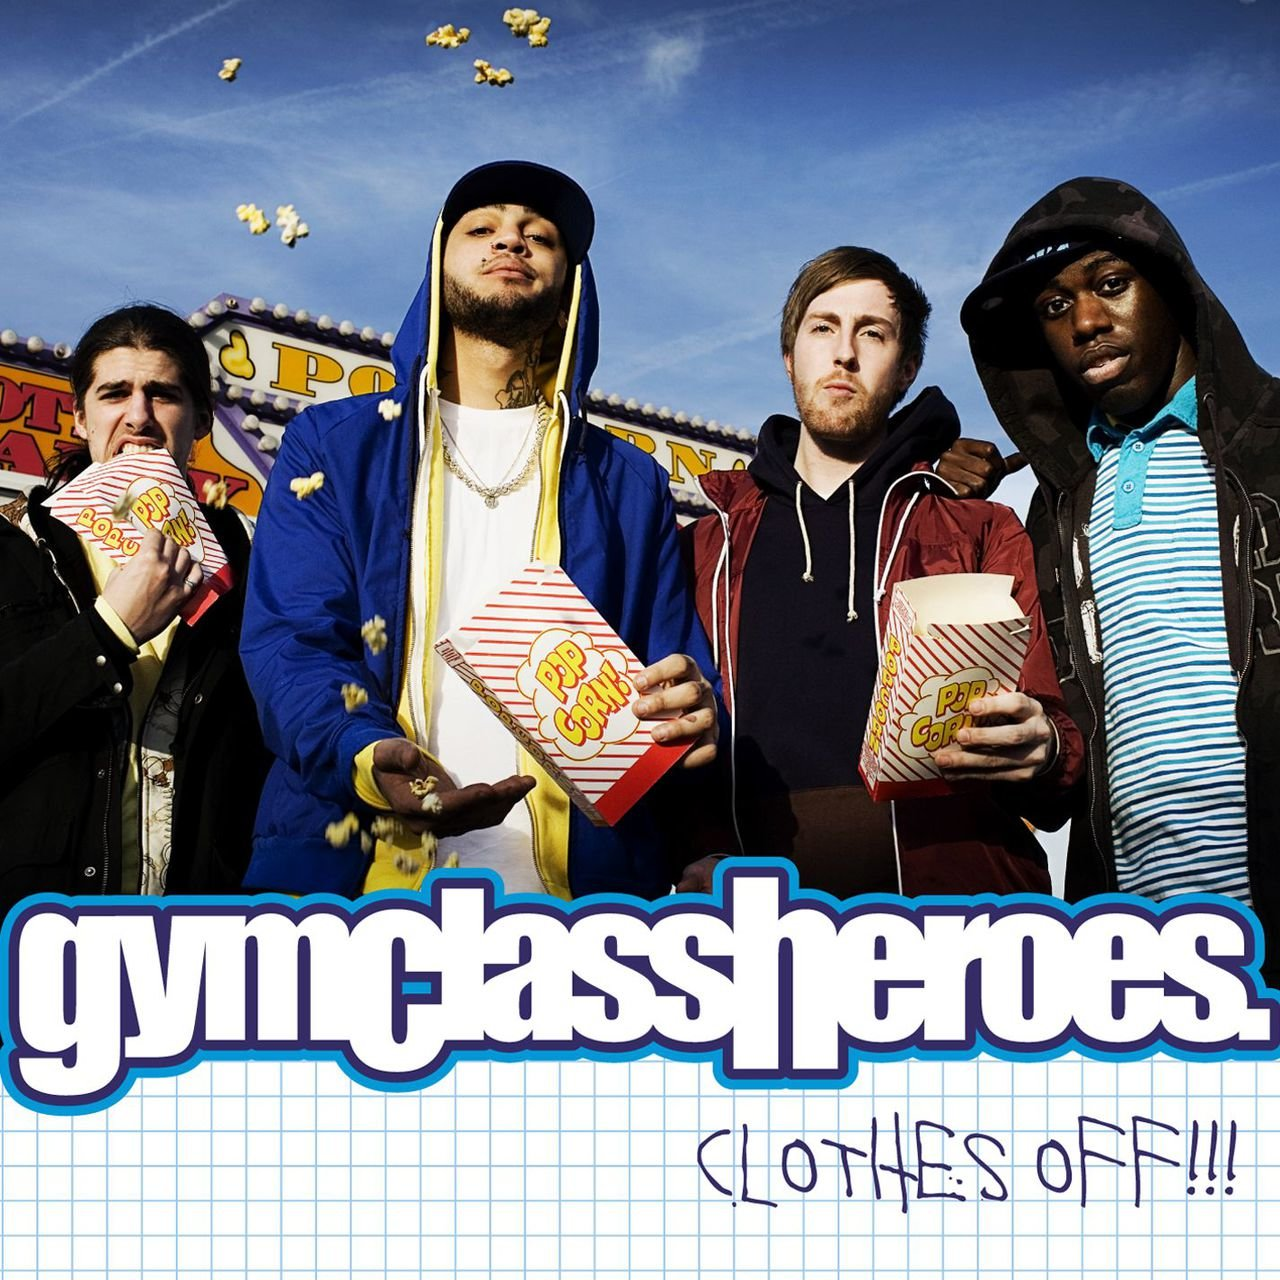 Tidal Listen To Gym Class Heroes On Tidal